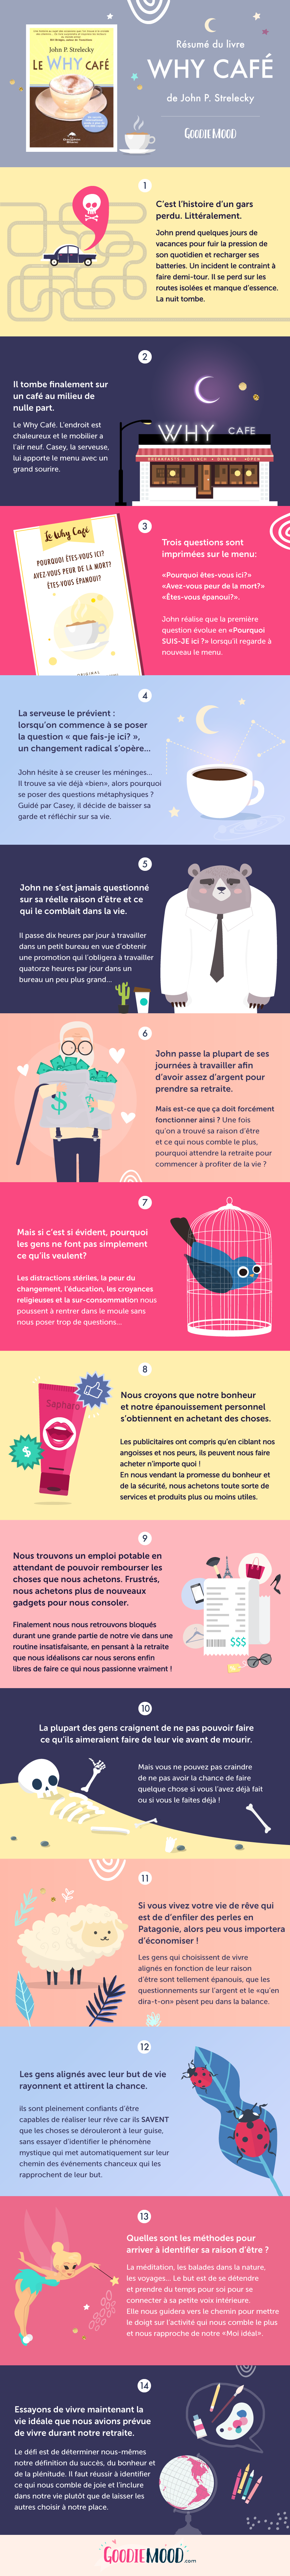 infographie_elodie_why_cafe